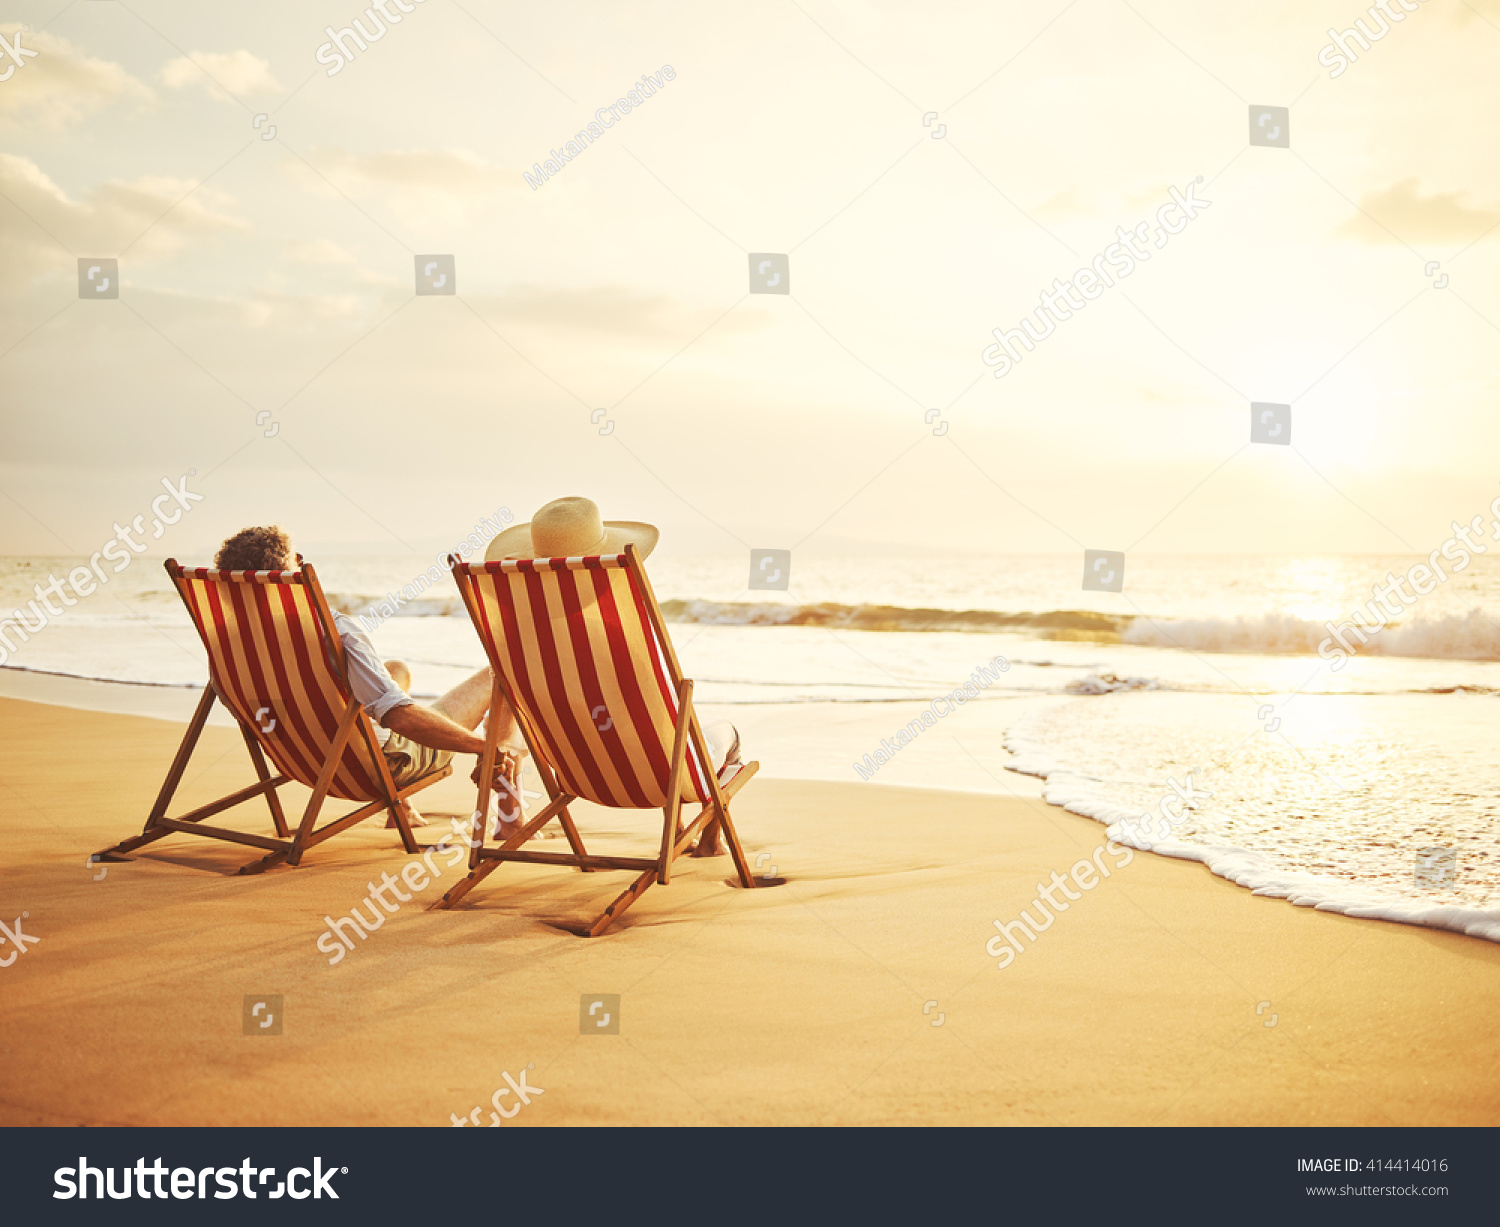 Retired Couple Watching Sunset Vintage Beach Stock Photo Edit Now 414414016